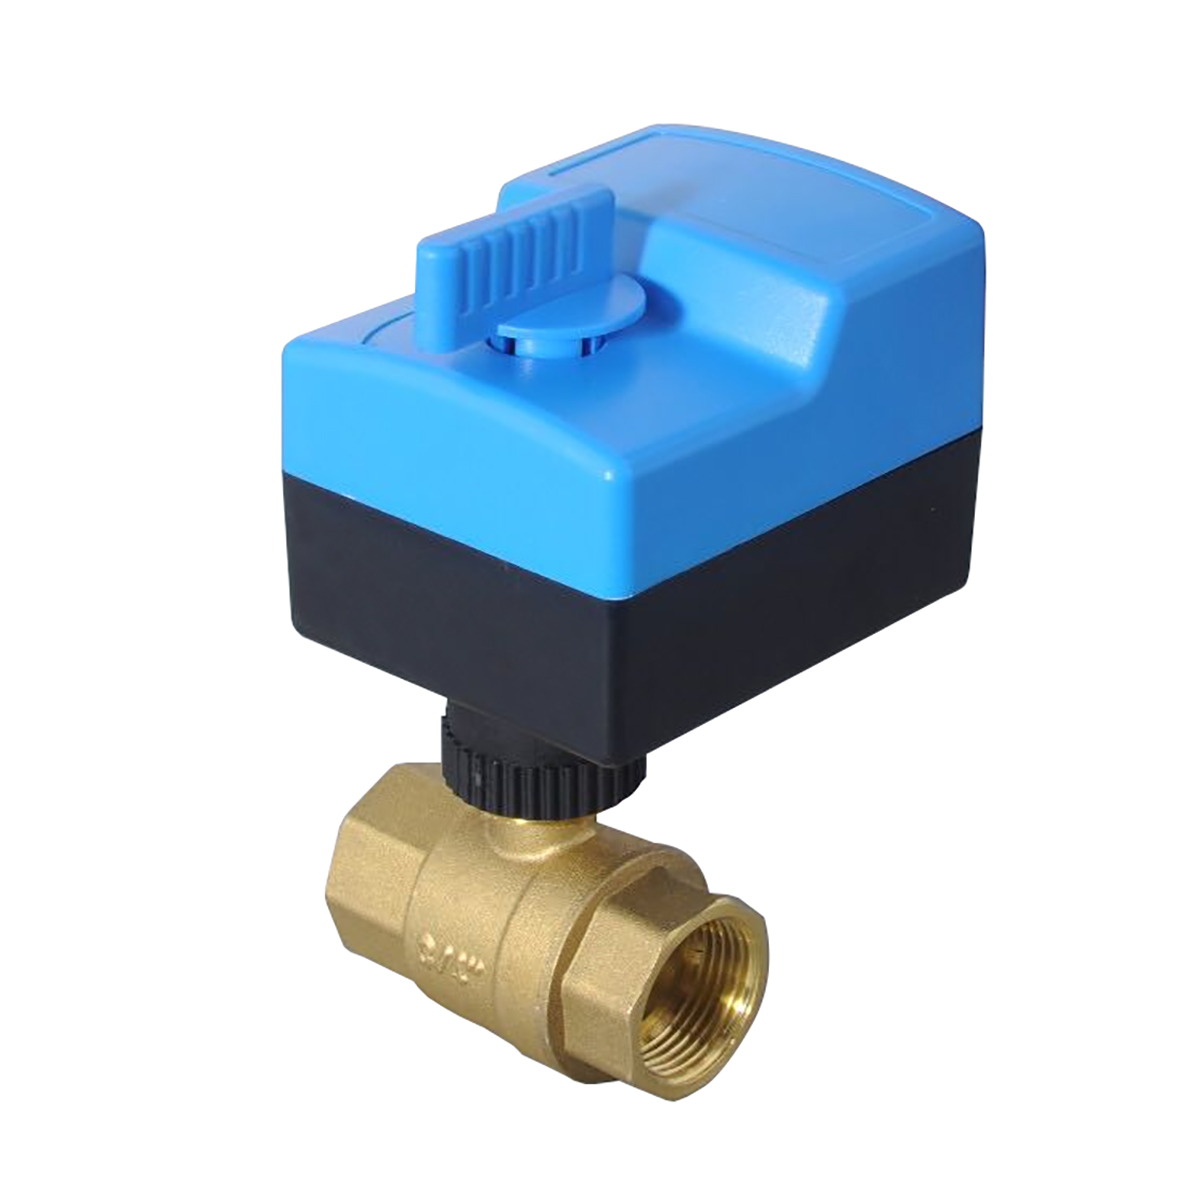 AC220V AC24V 2 way brass valve motorized ball valve electric ball valve electric Actuator with Automatic and manual DN15 - DN25 1 dn25 pneumatic female ball valve 2 way 304 screwed thread stainless steel ball valve double acting at straight way ball valve